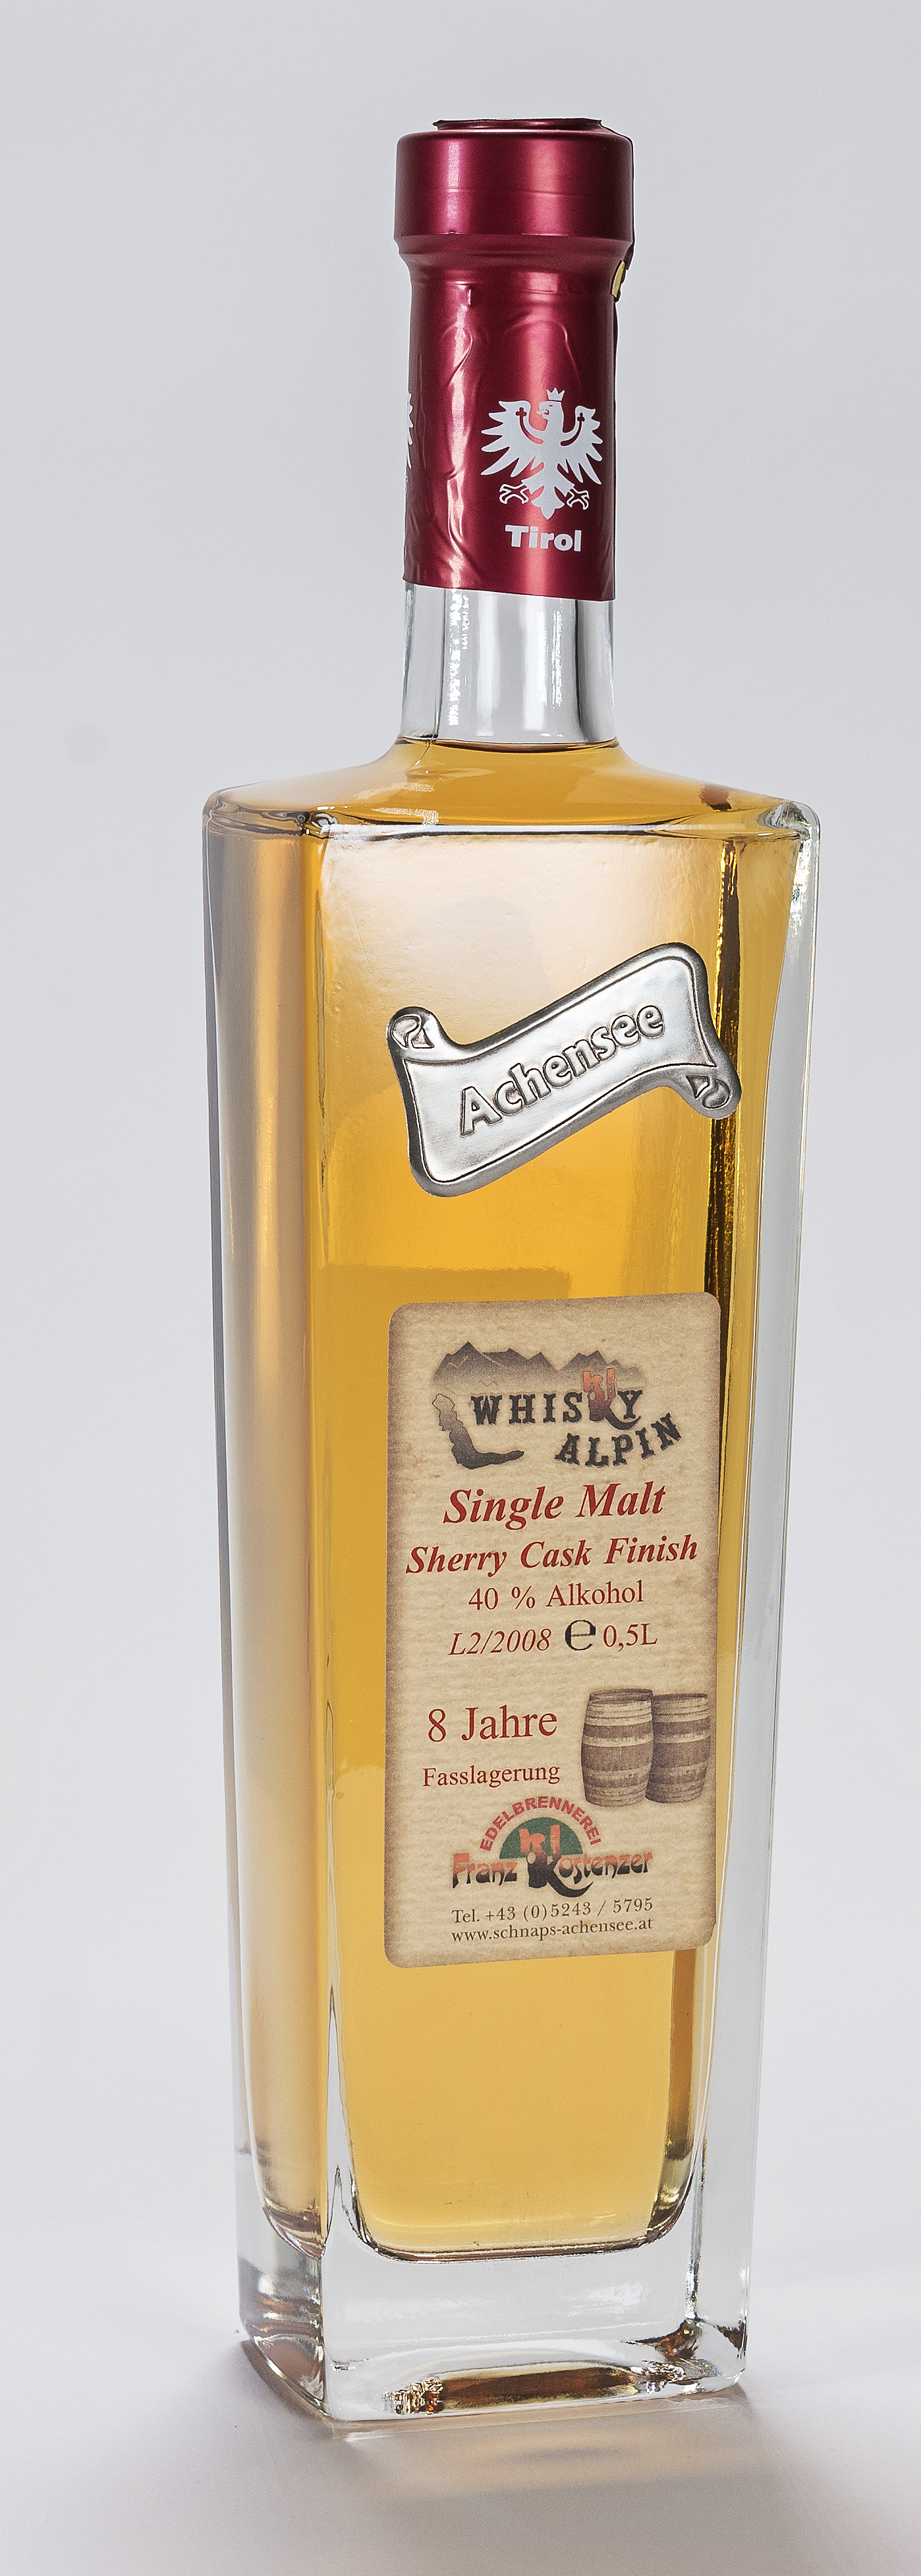 Single Malt Sherry Cask Finish